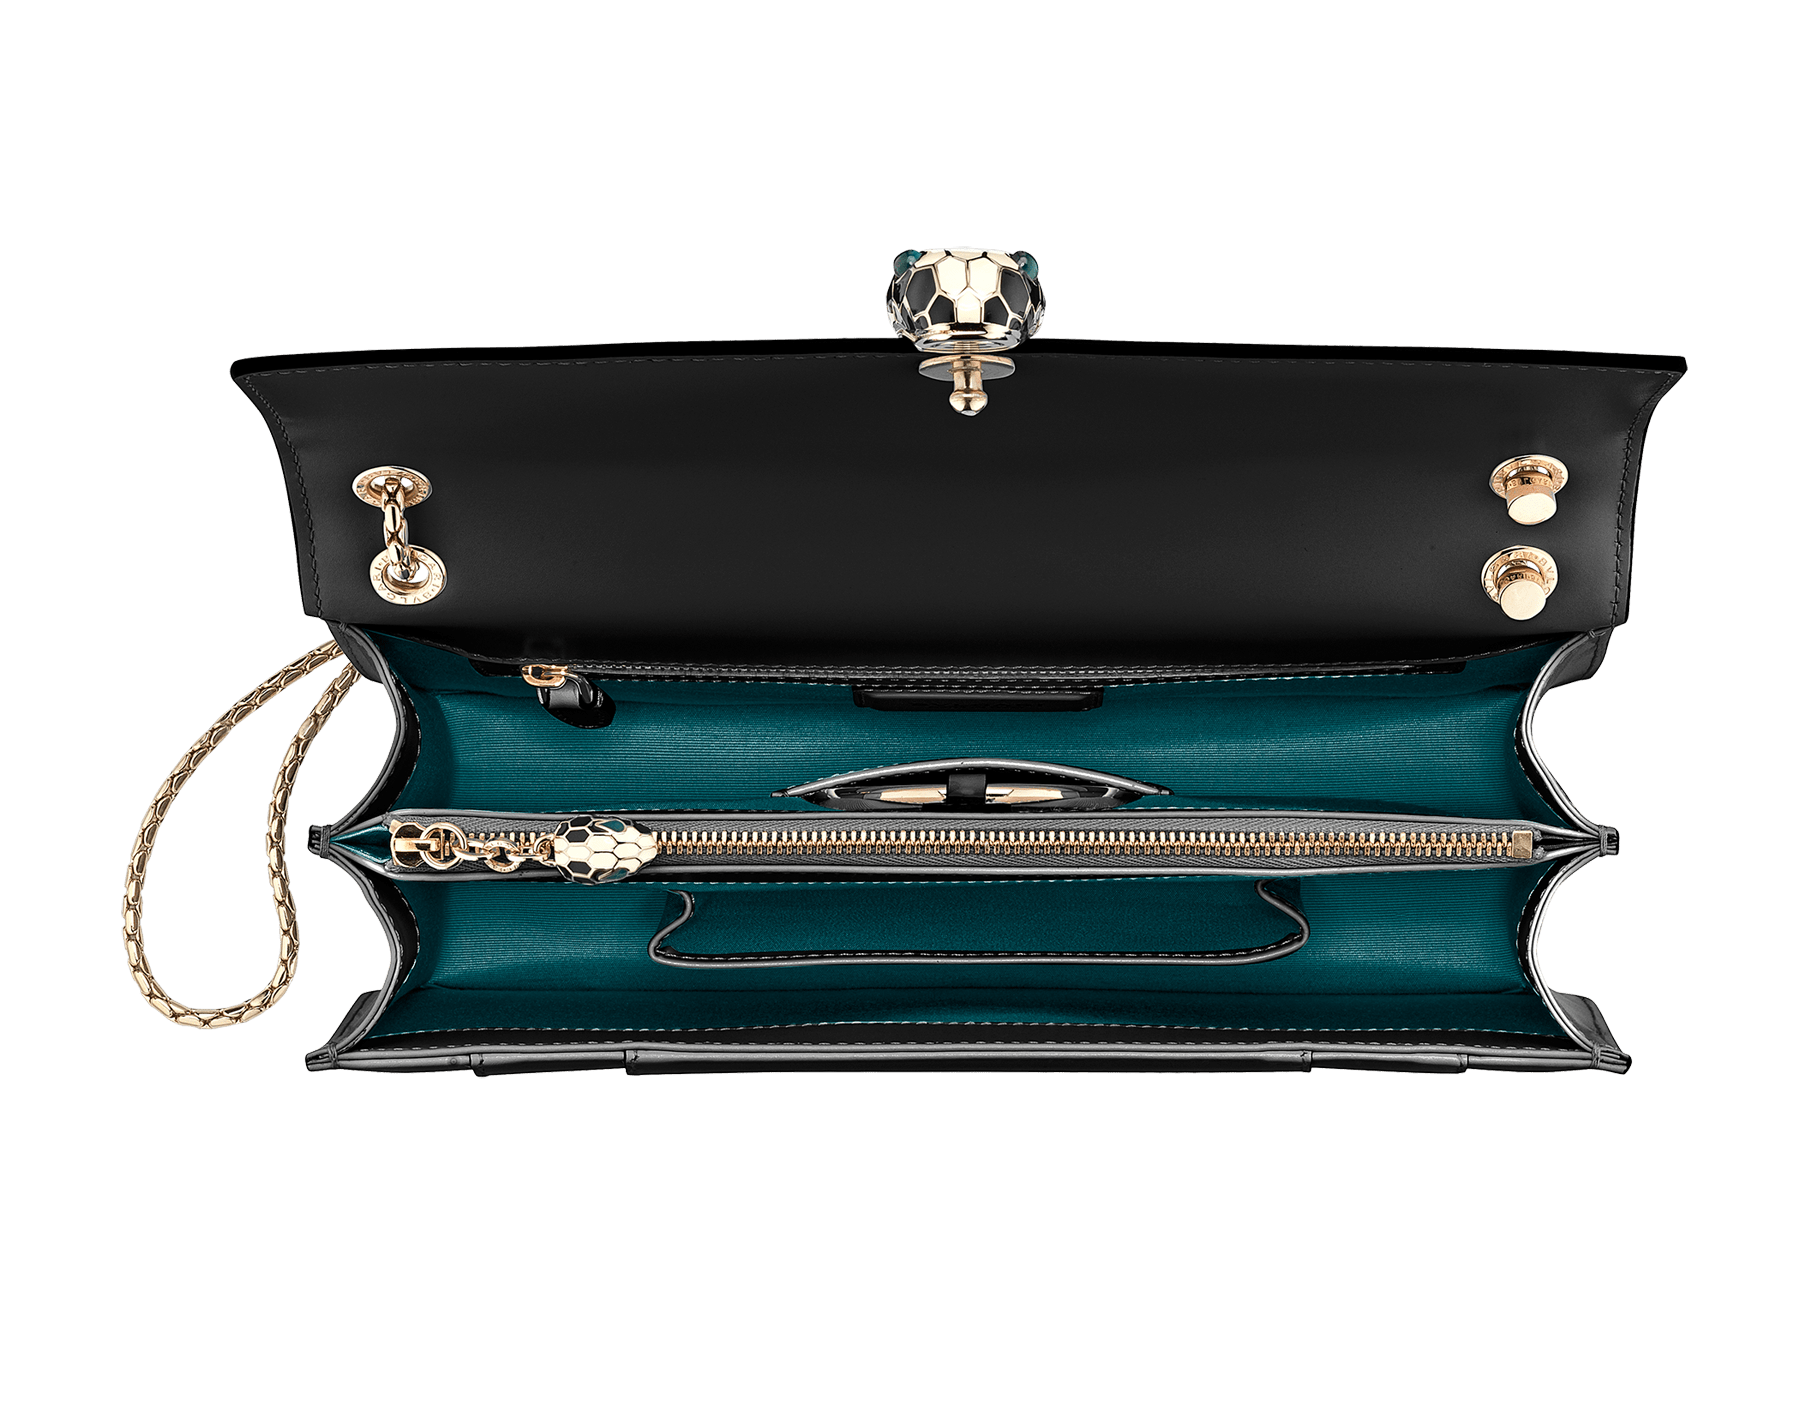 Black calf leather shoulder bag with brass light gold plated black and white enamel Serpenti head closure with malachite eyes. 521-CLa image 4